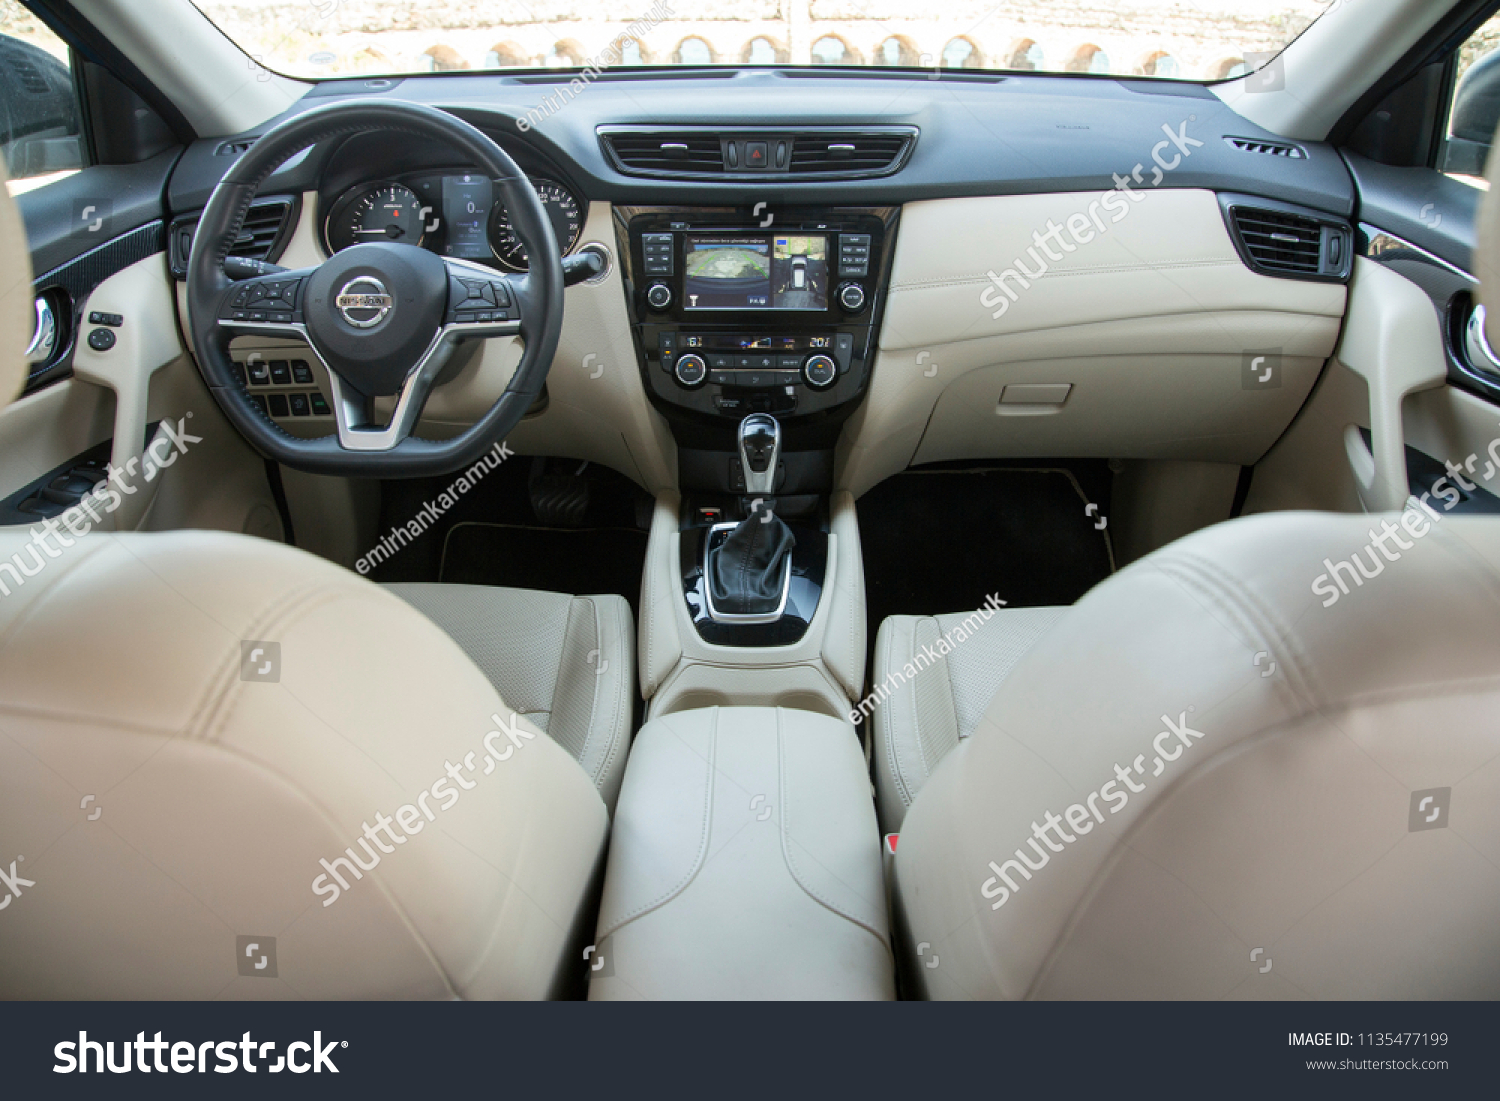 Interieur X Trail 2018 Istanbul Turkey June 28 2018 Nissan X Trail Stockfoto Jetzt